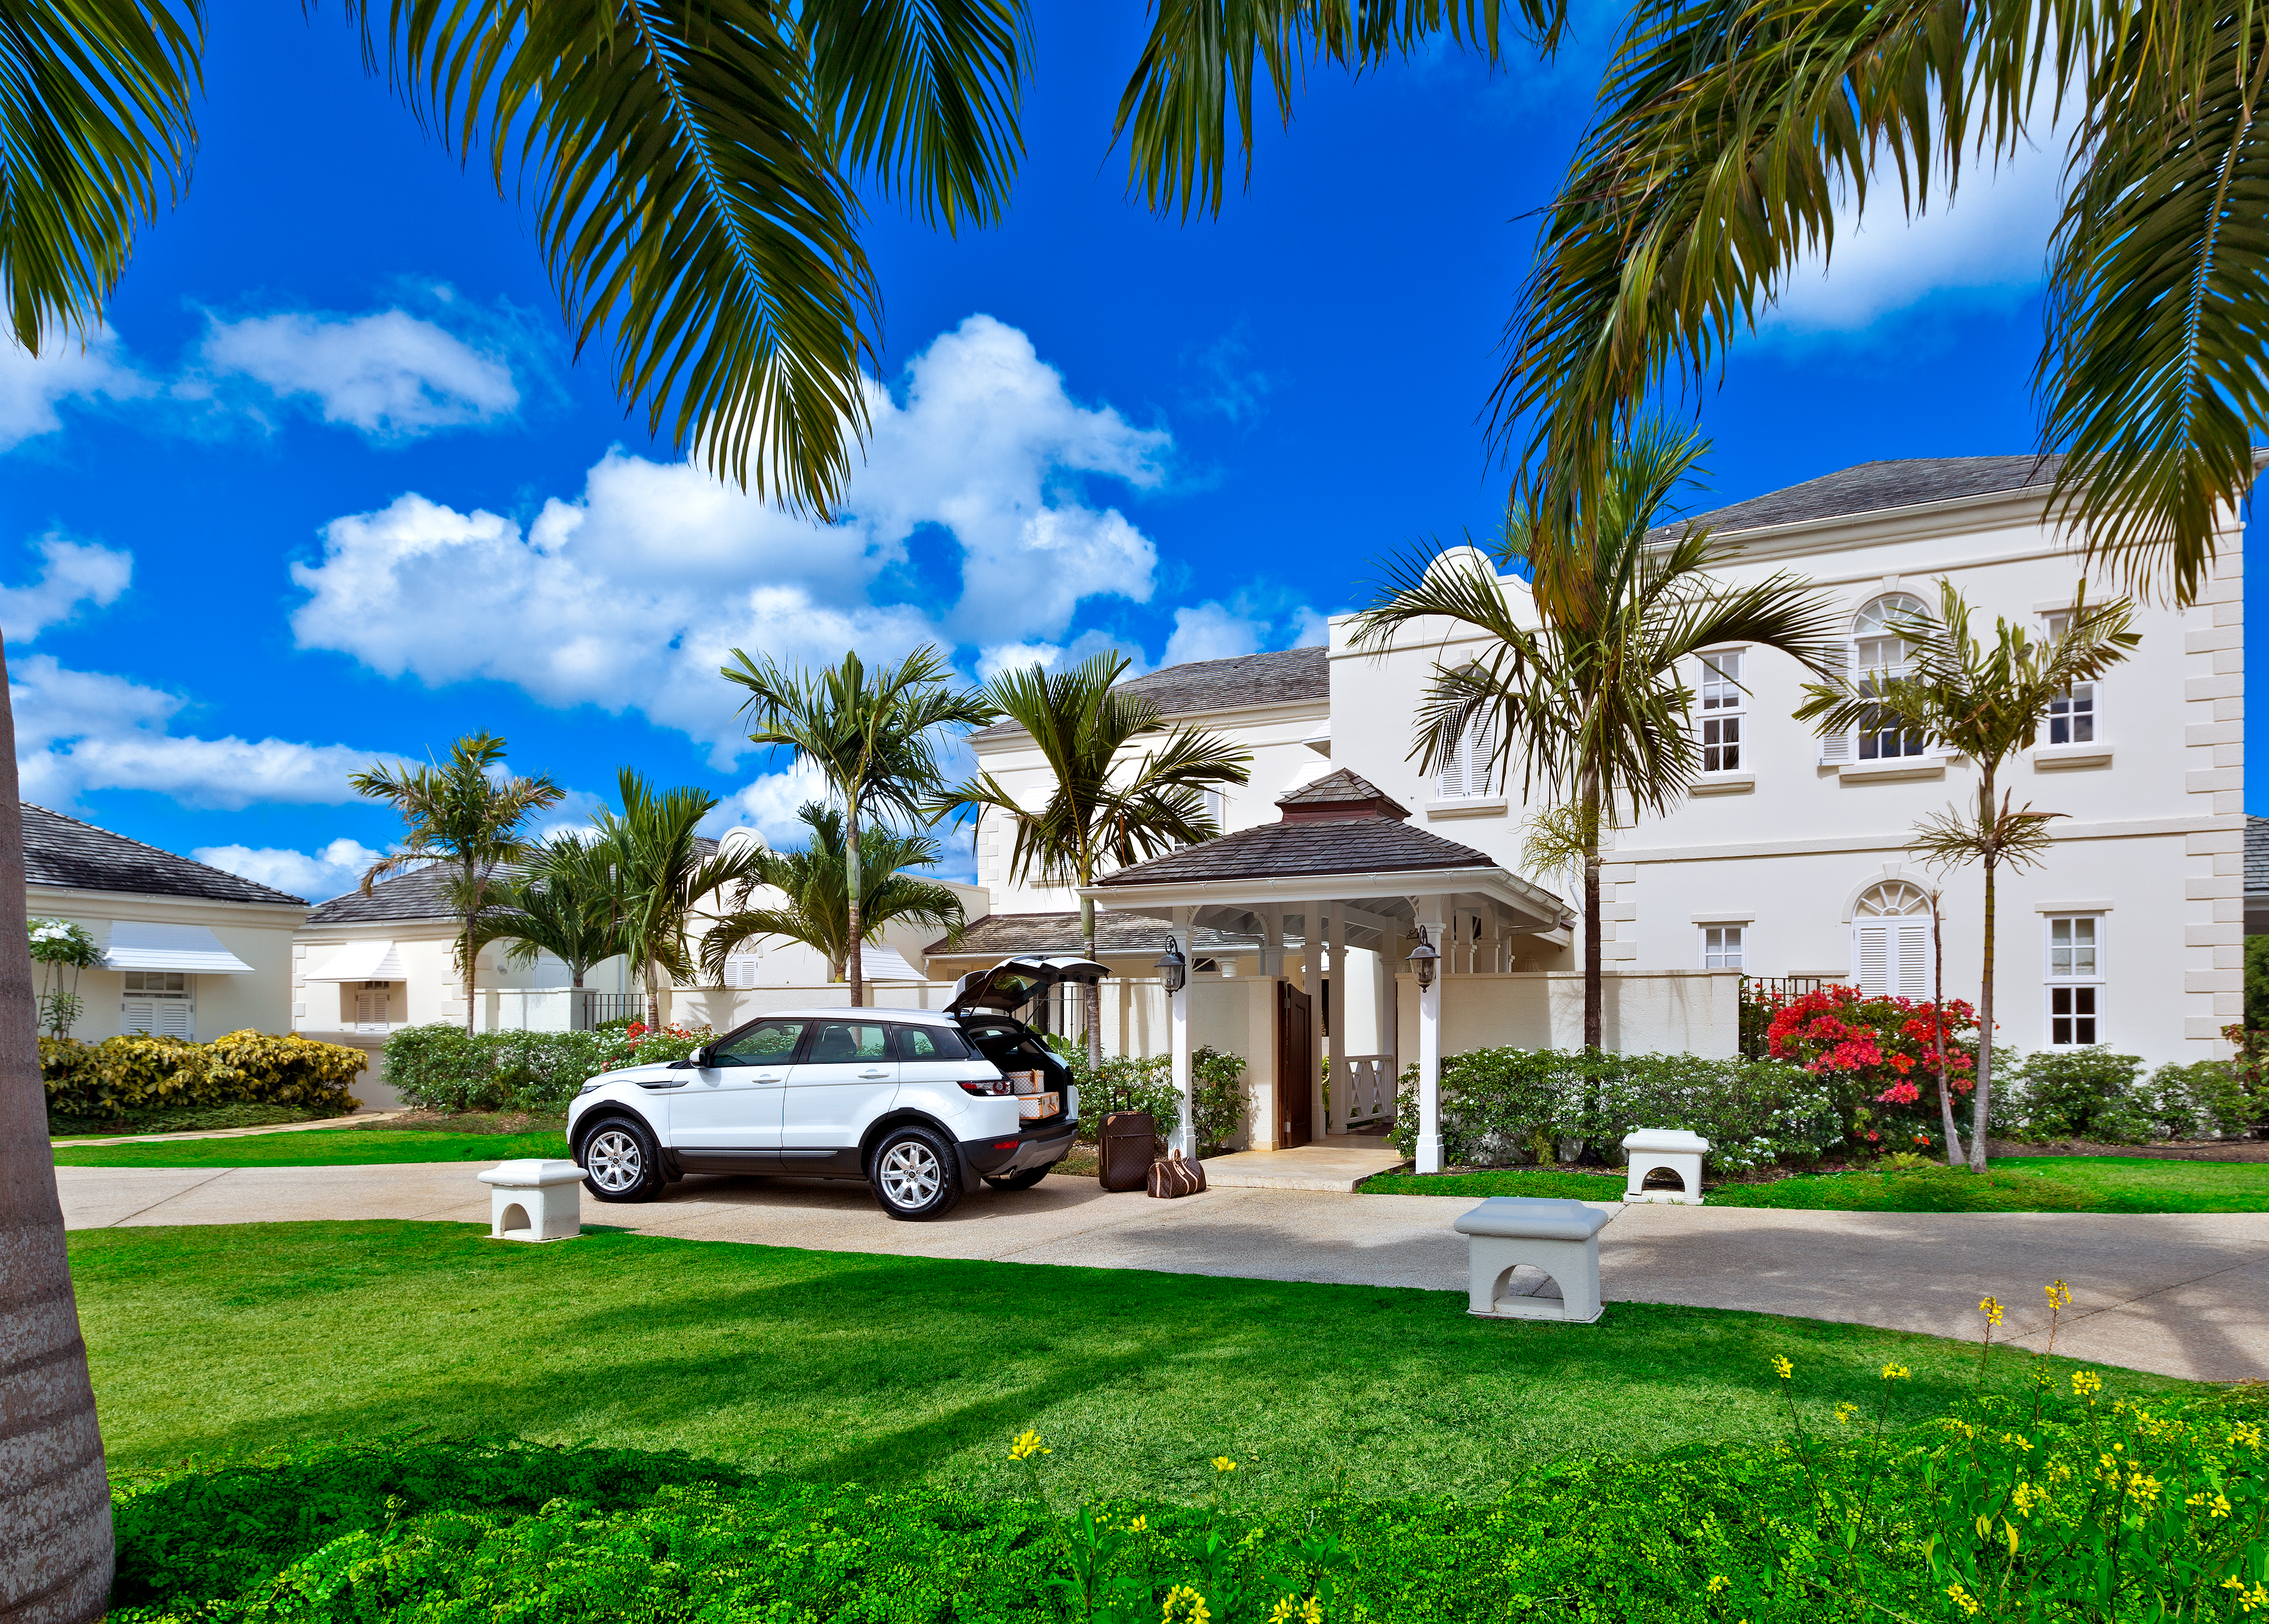 RWM MAY-2014 OCEAN DRIVE 7 FRONT EXTERIOR DAY